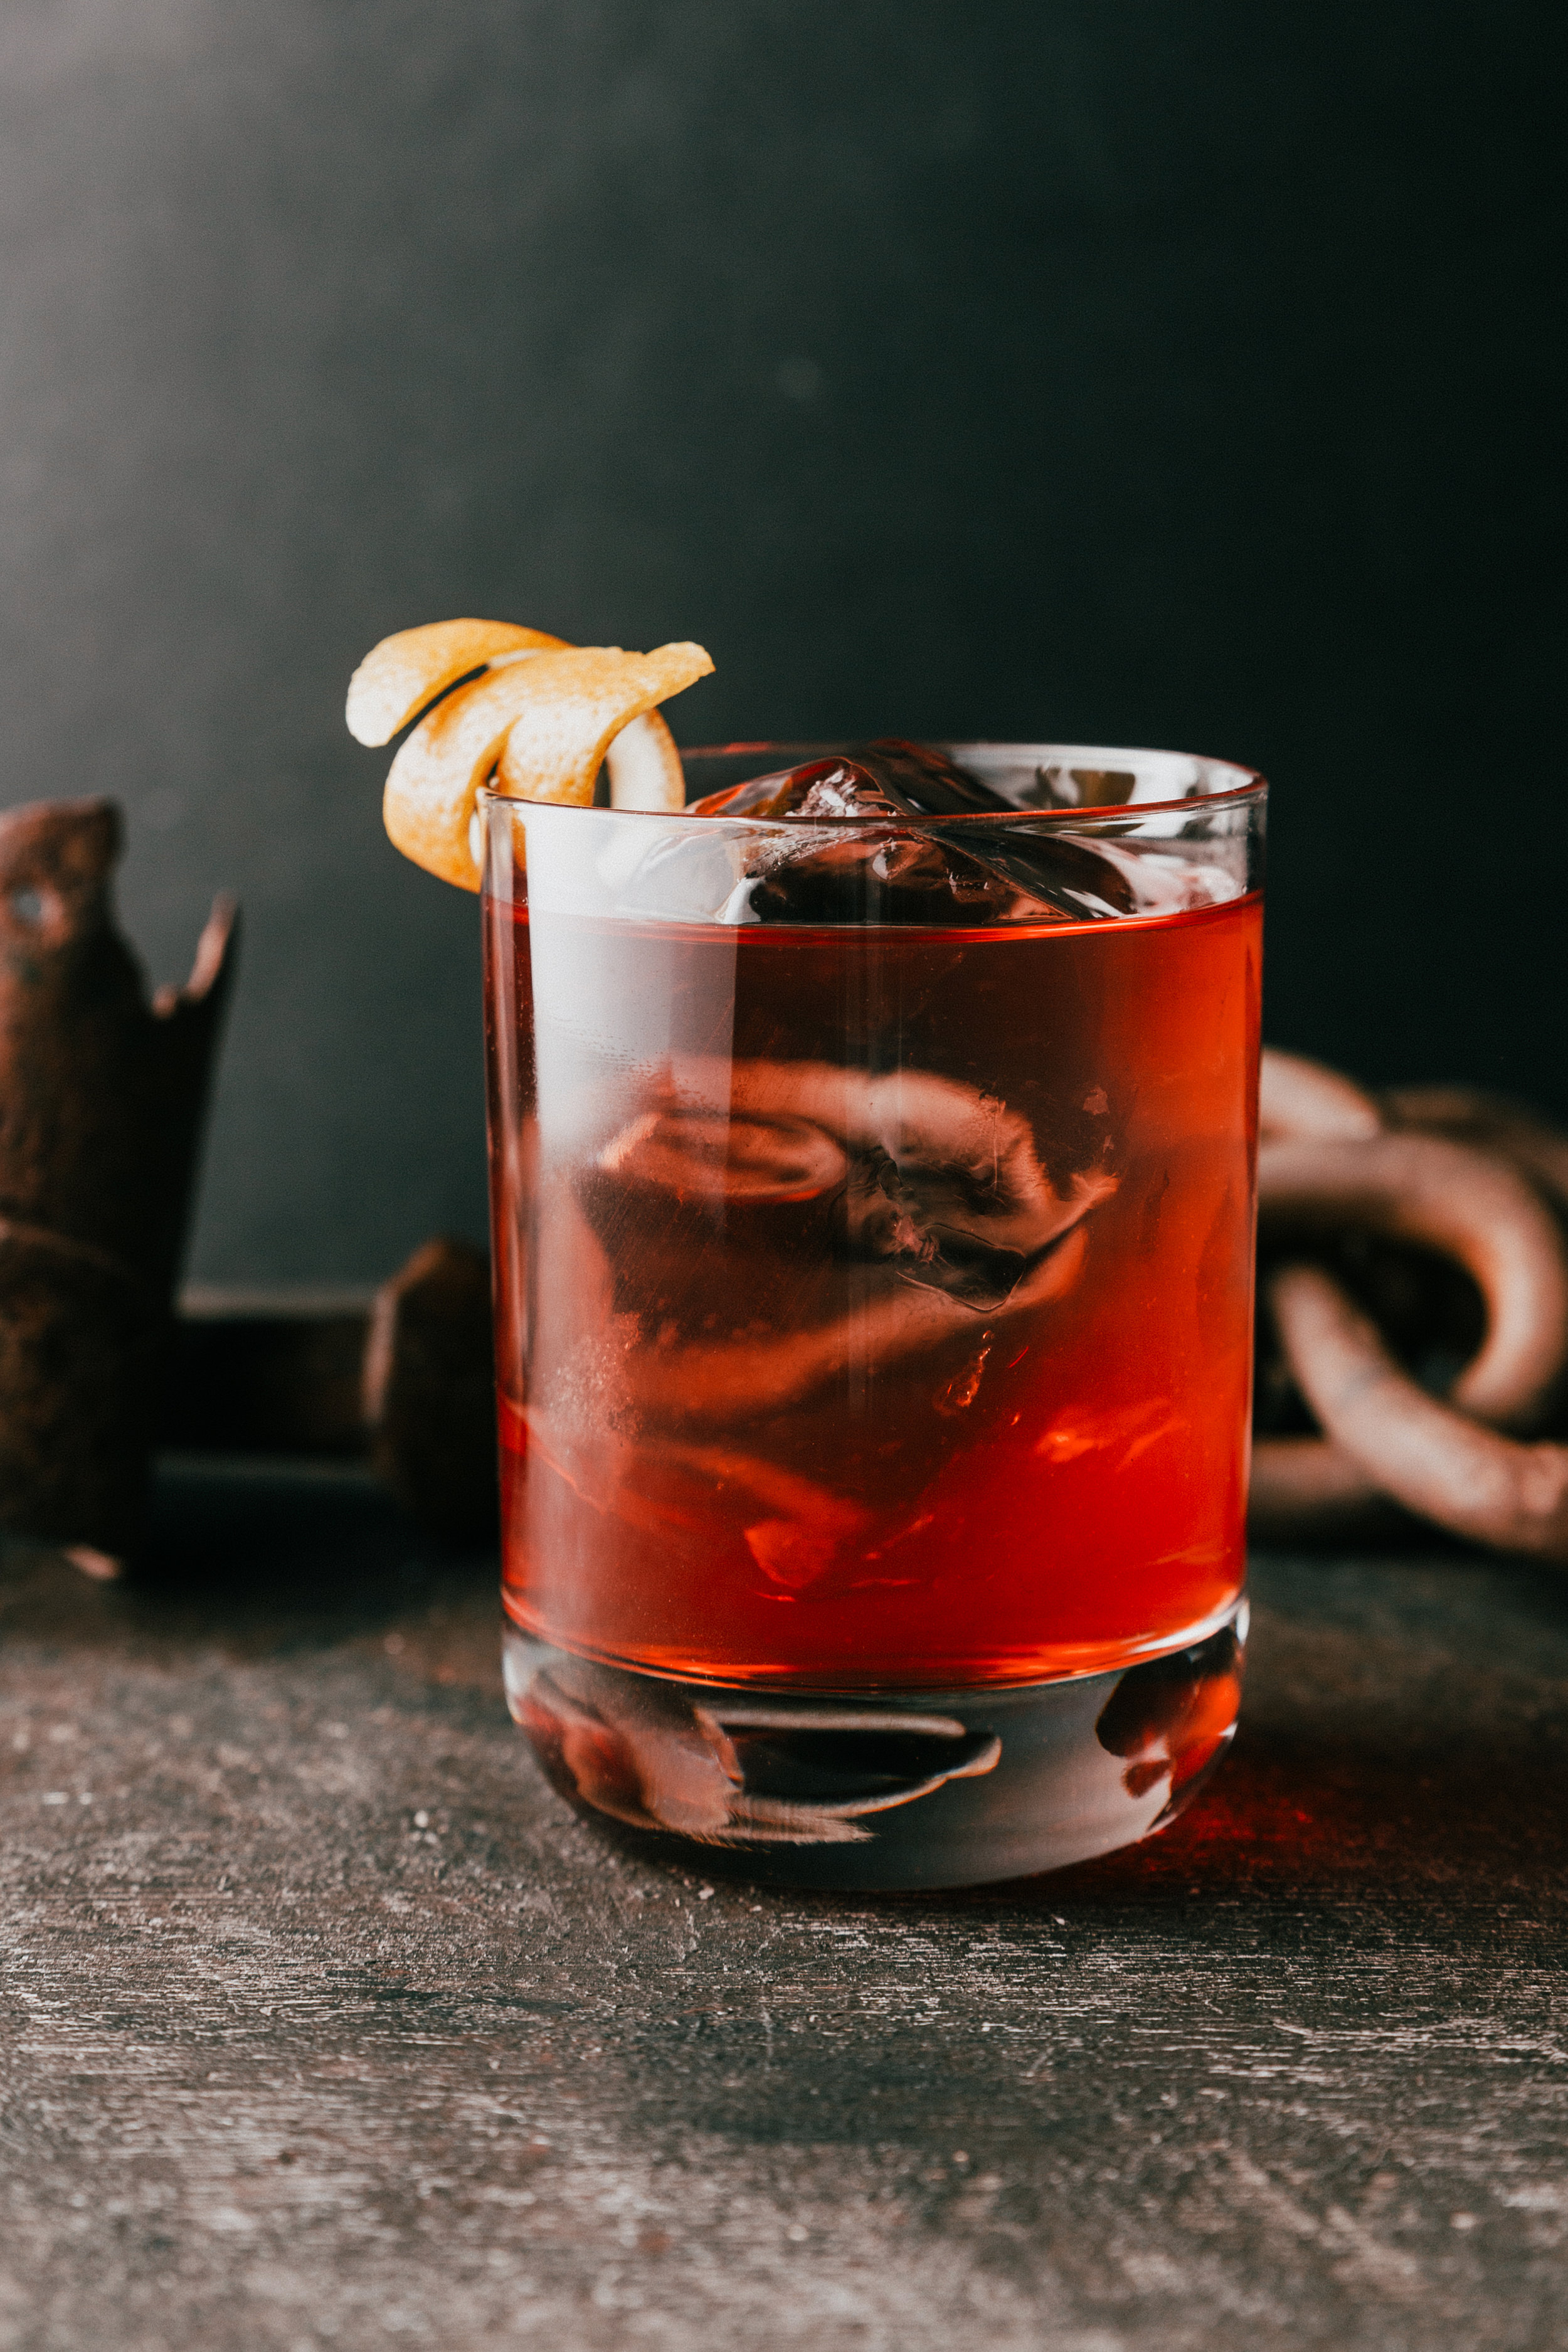 Negroni    1 oz. VIGO Amaro    1 oz. Campari    1 oz. Bluecoat American Dry Gin    Measure all the ingredients listed above into a mixing glass    Stir and serve on the rocks    Garnish with an orange twist